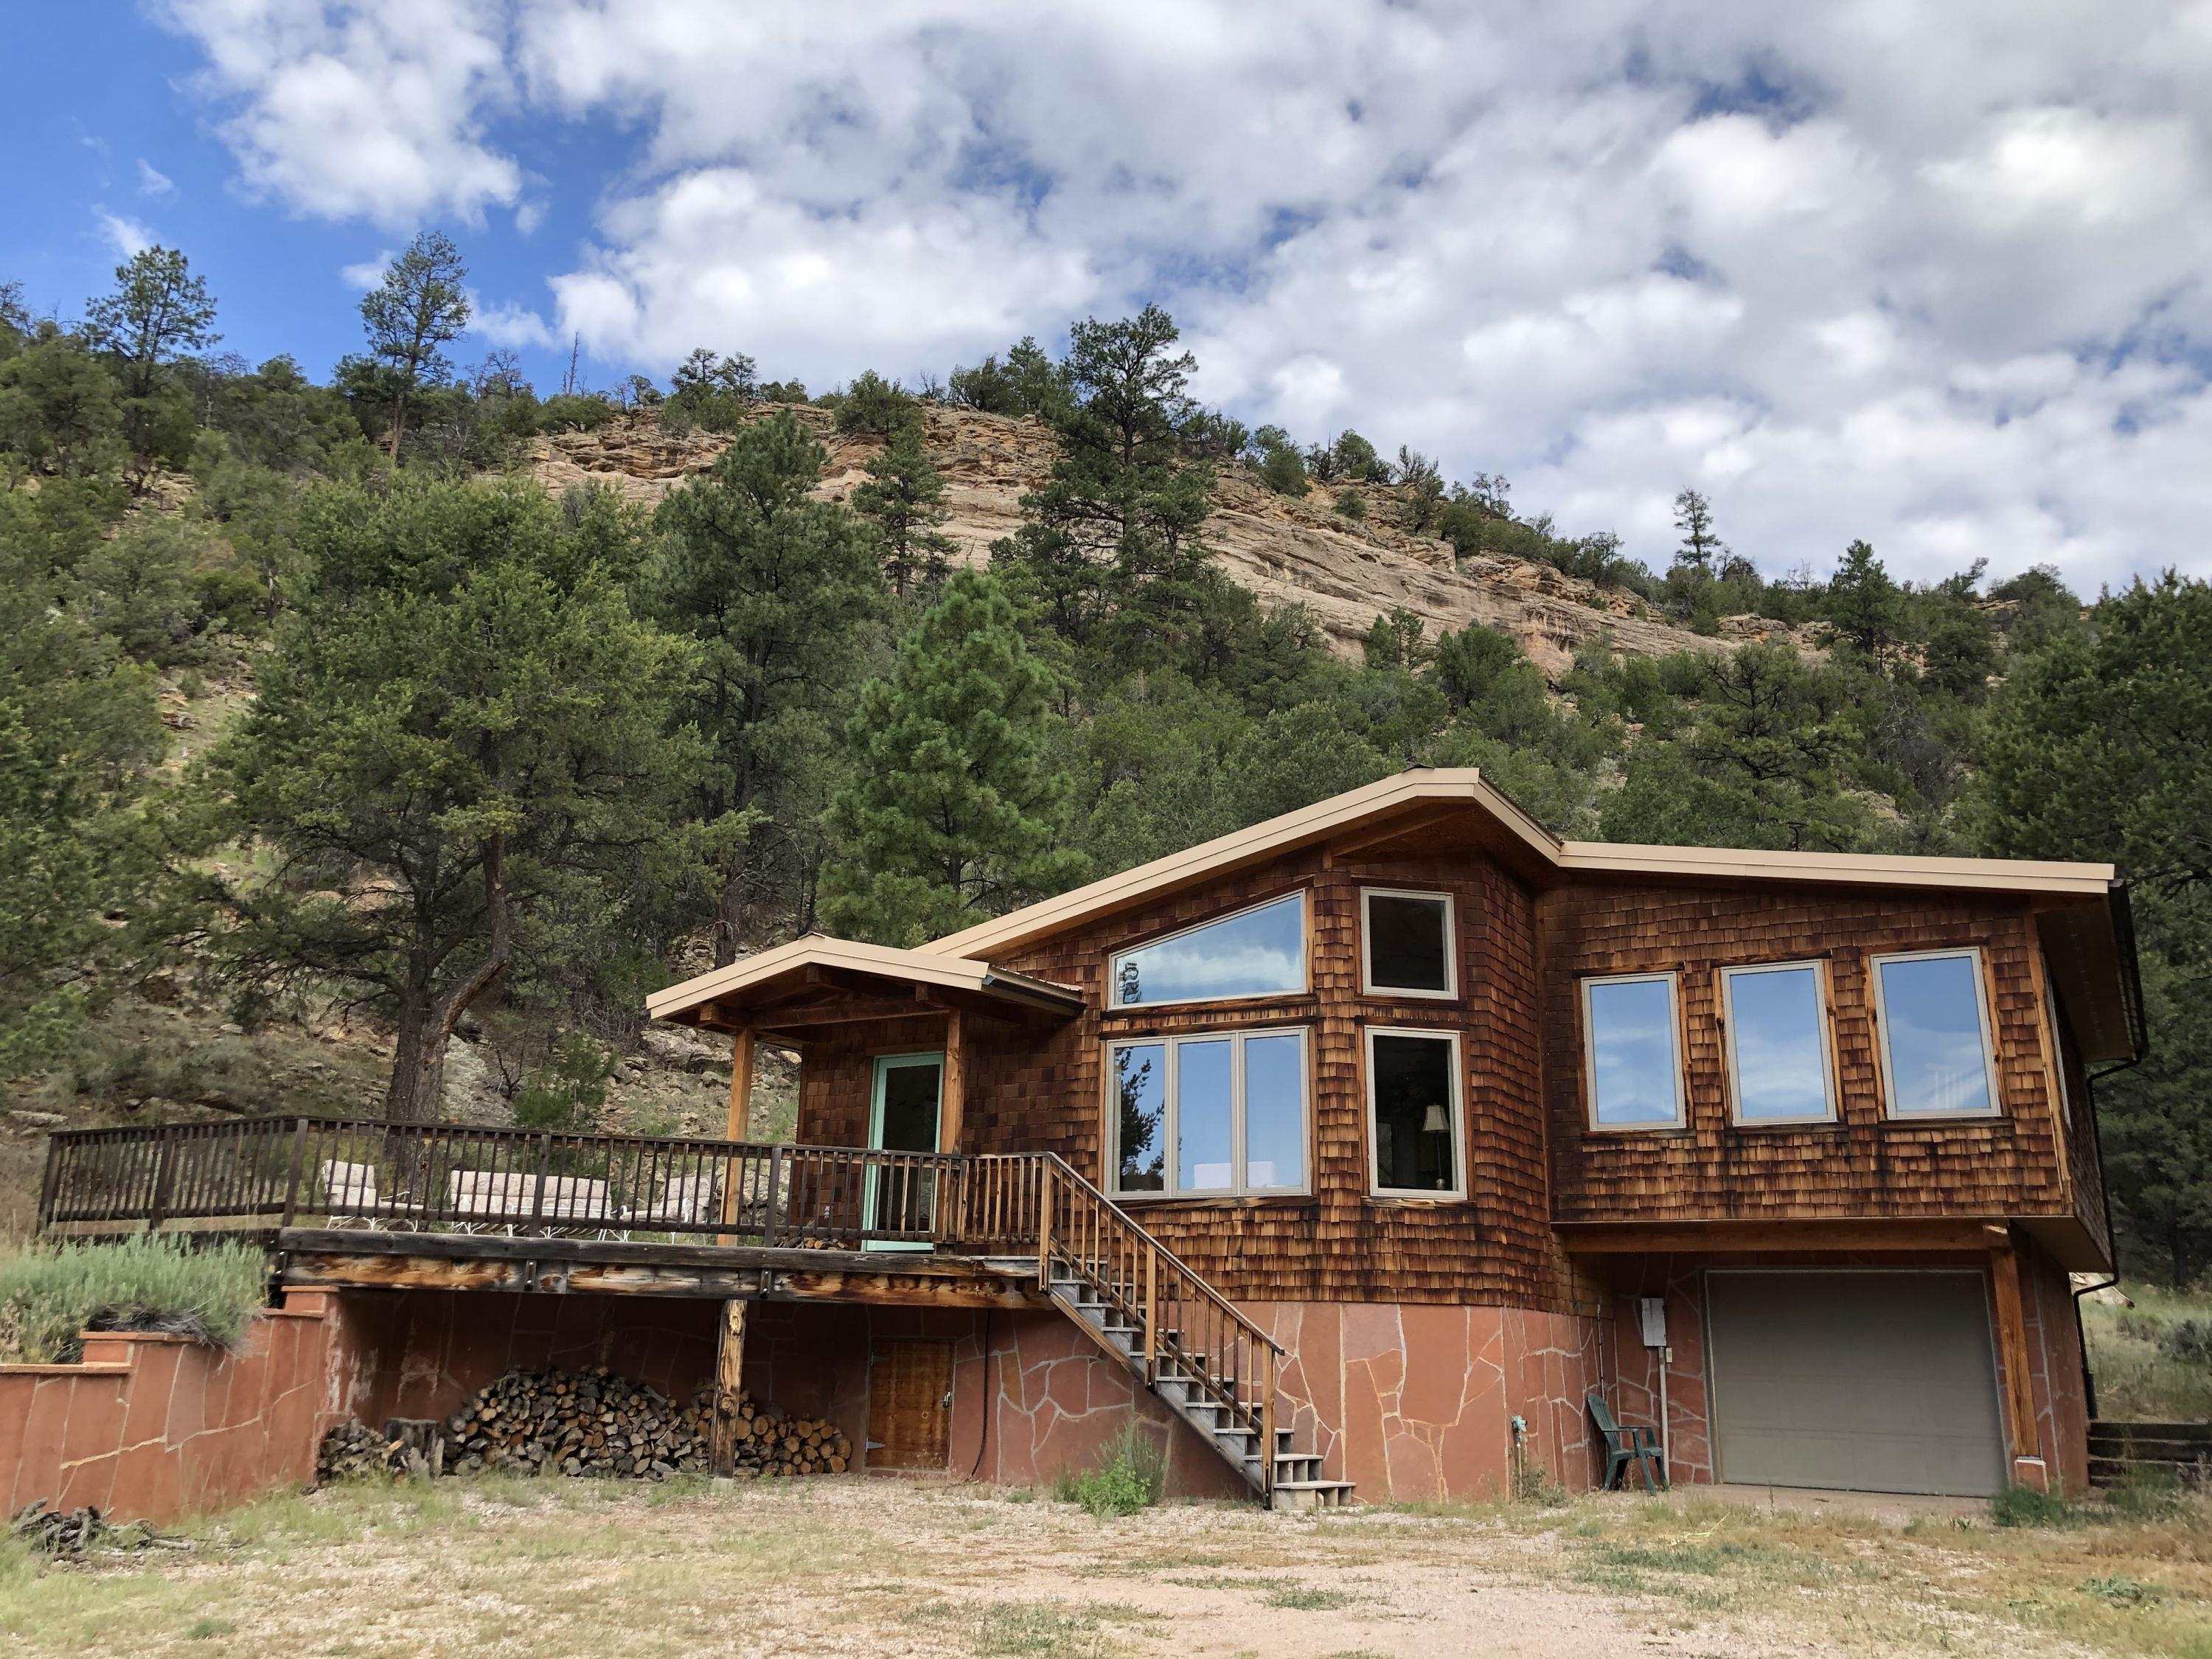 1 Lakeview Drive, Ramah, NM 87321 - Ramah, NM real estate listing